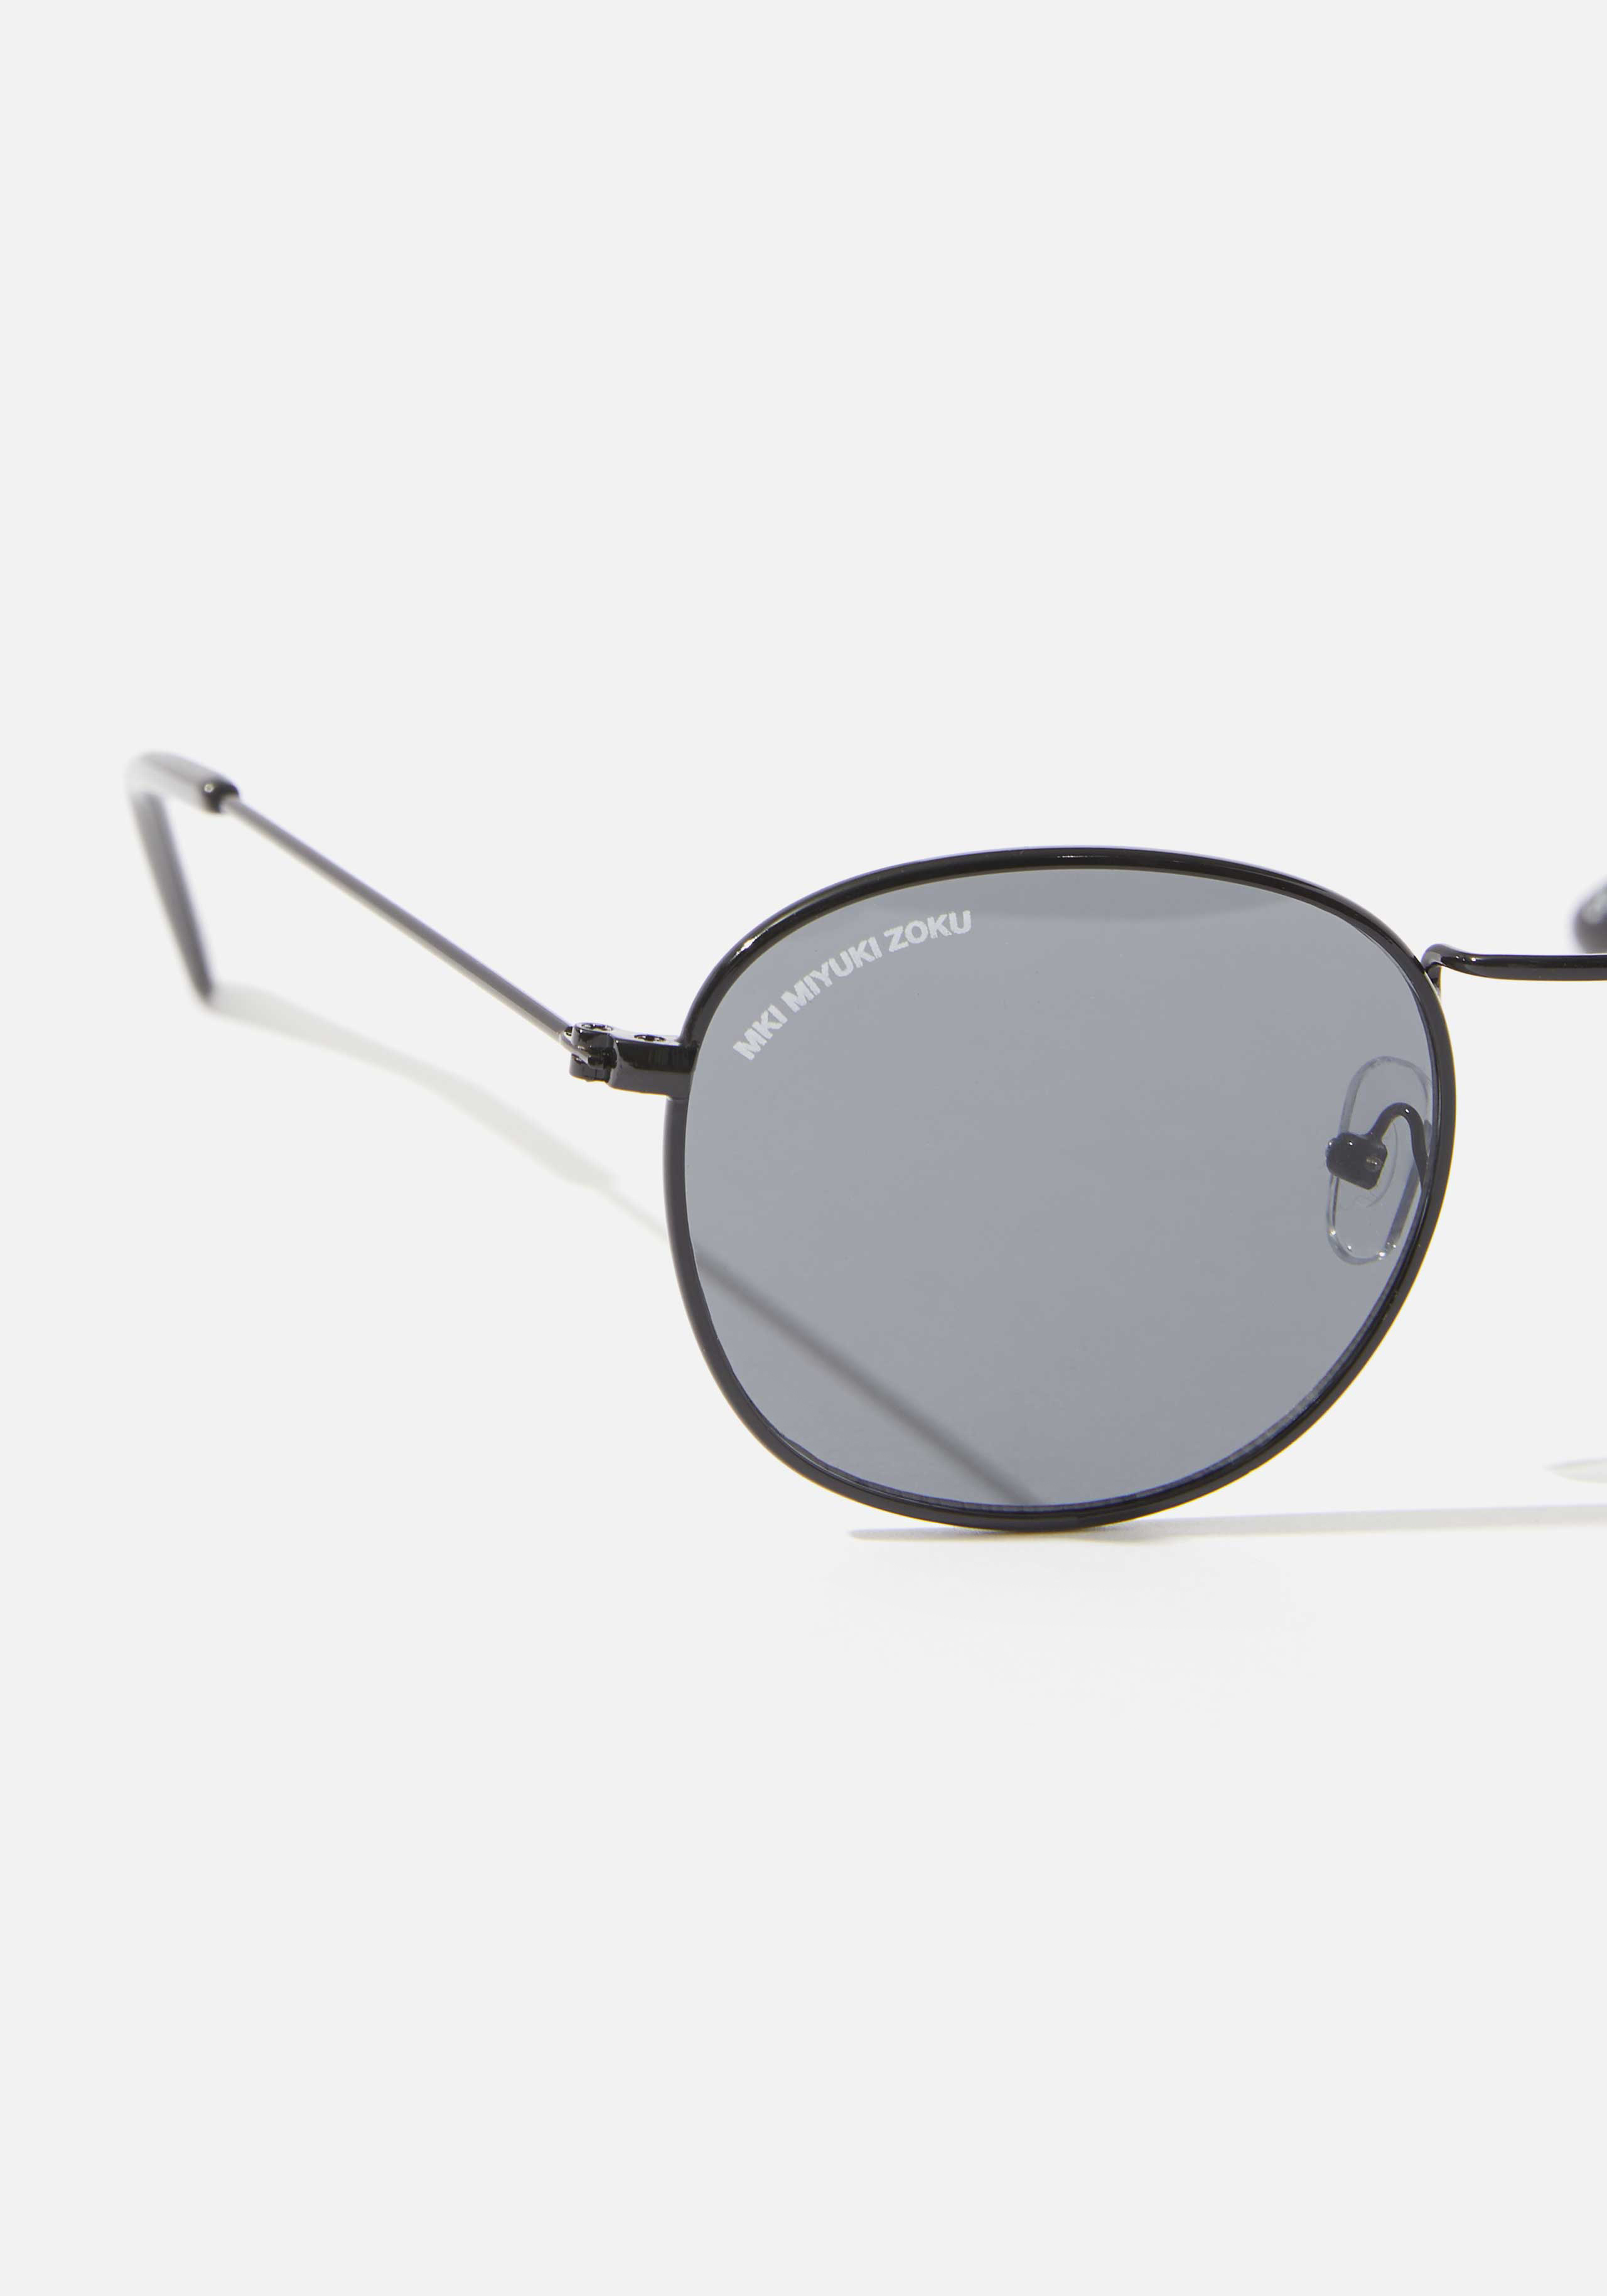 mki metal round sunglasses 3